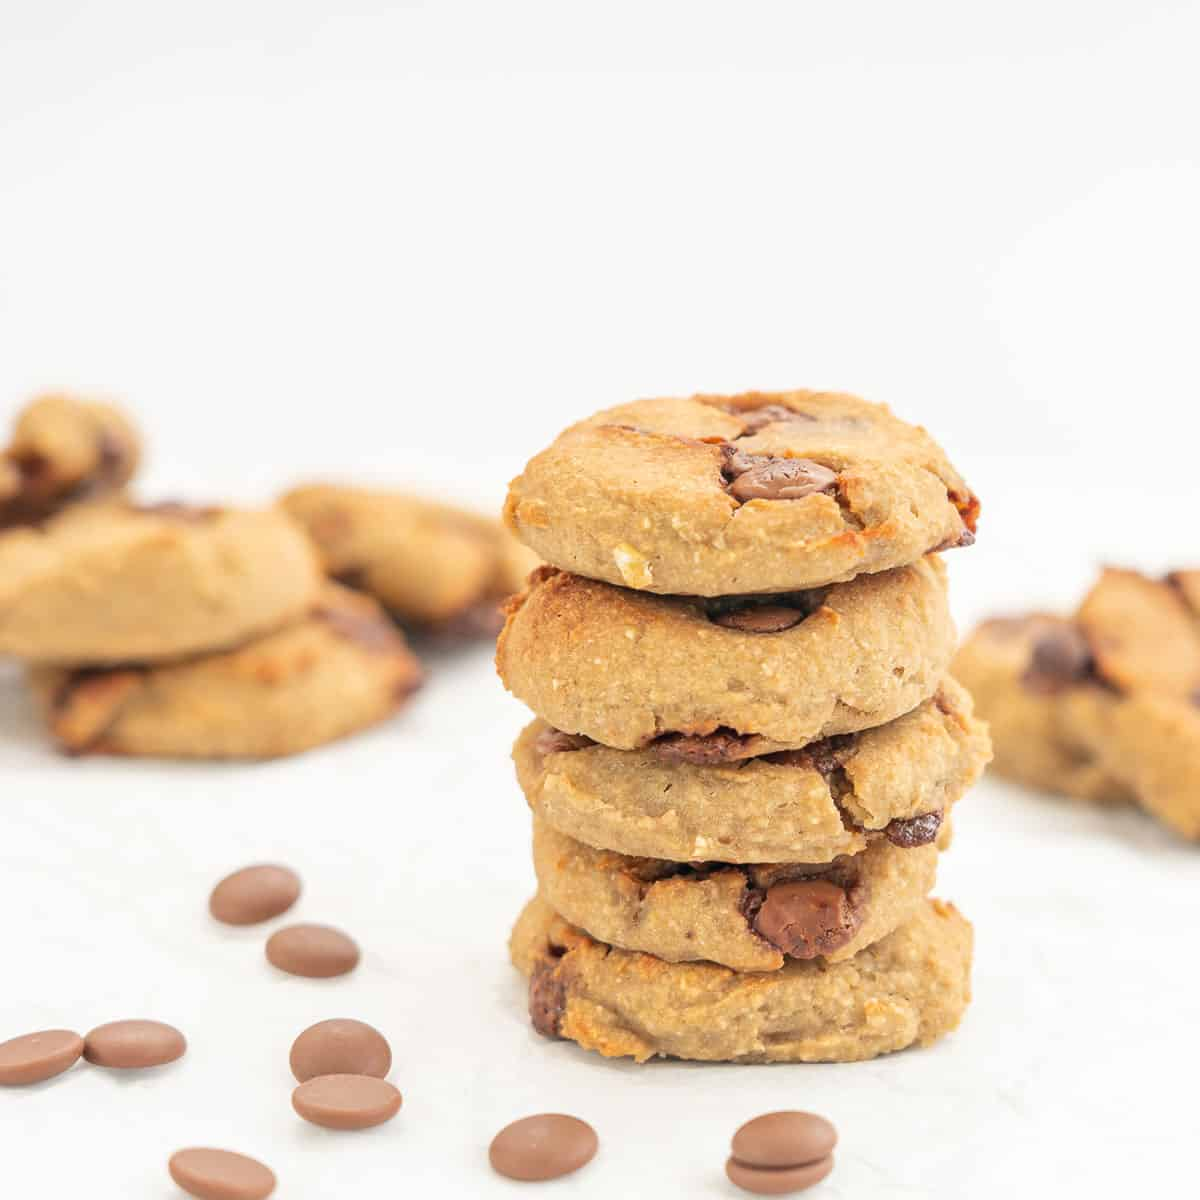 a stack of 5 chocolate chip chickpea cookies